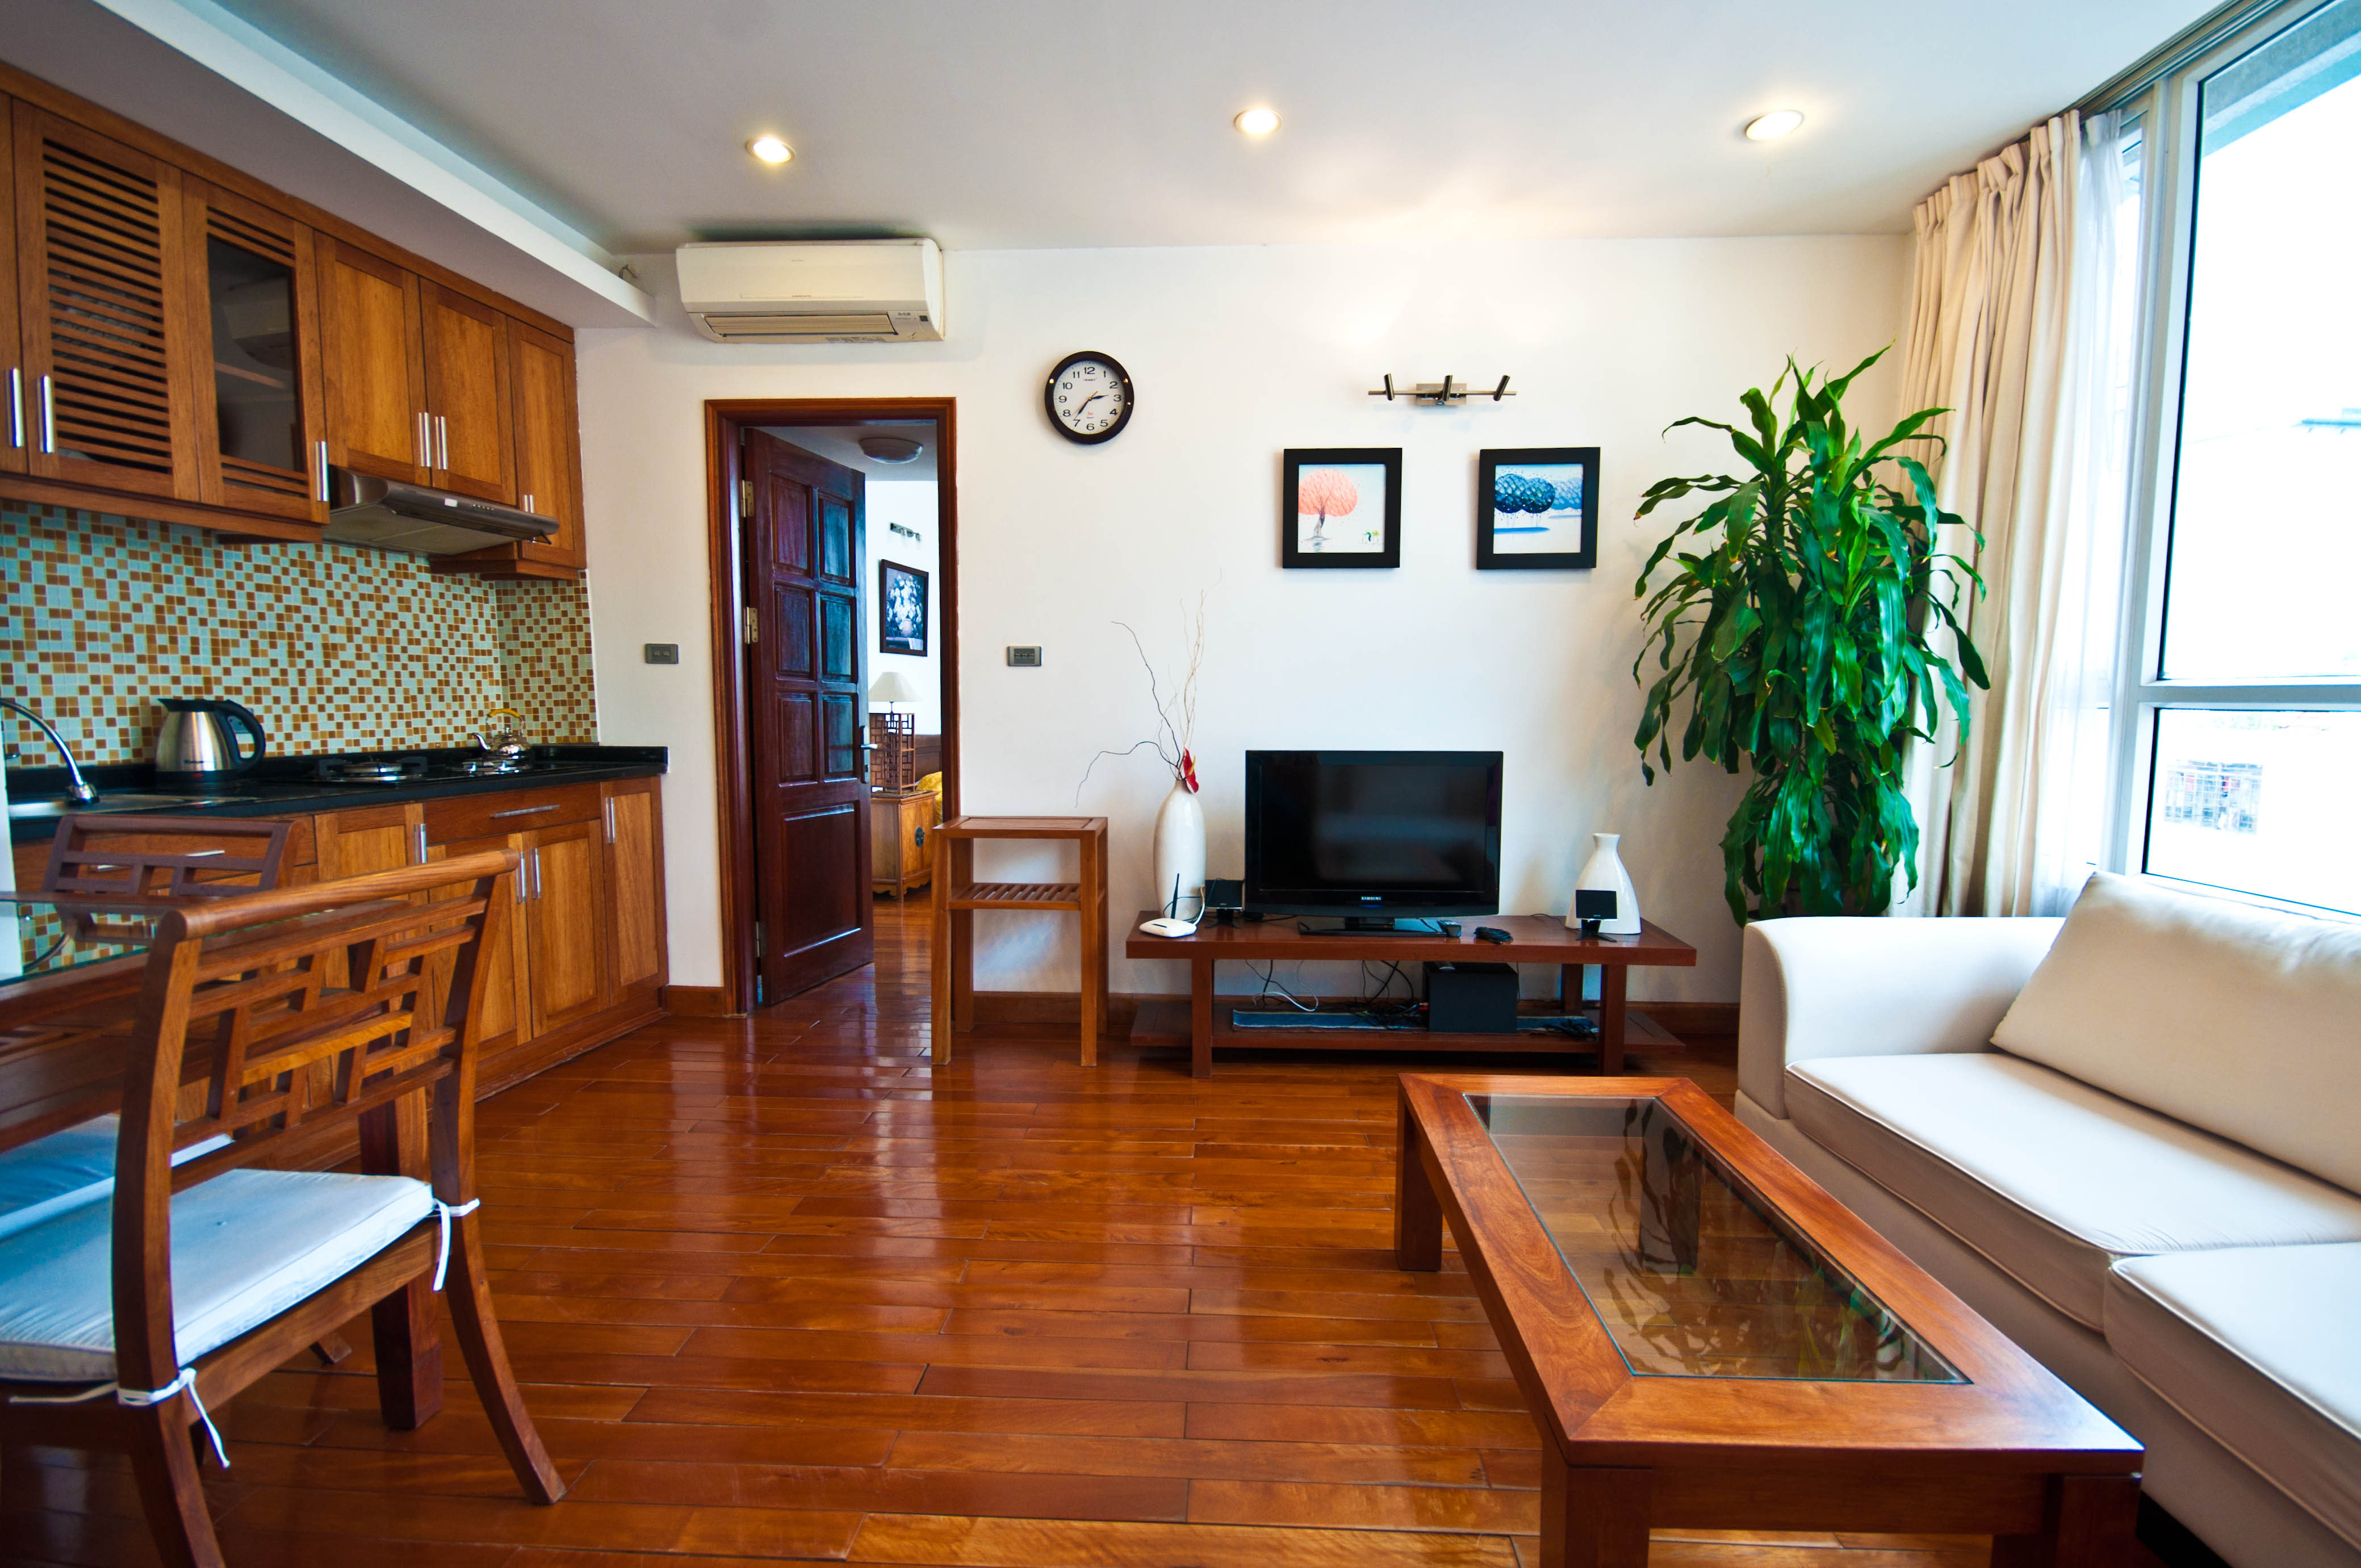 Lovely 1 bedroom apartment in Mac Dinh Chi